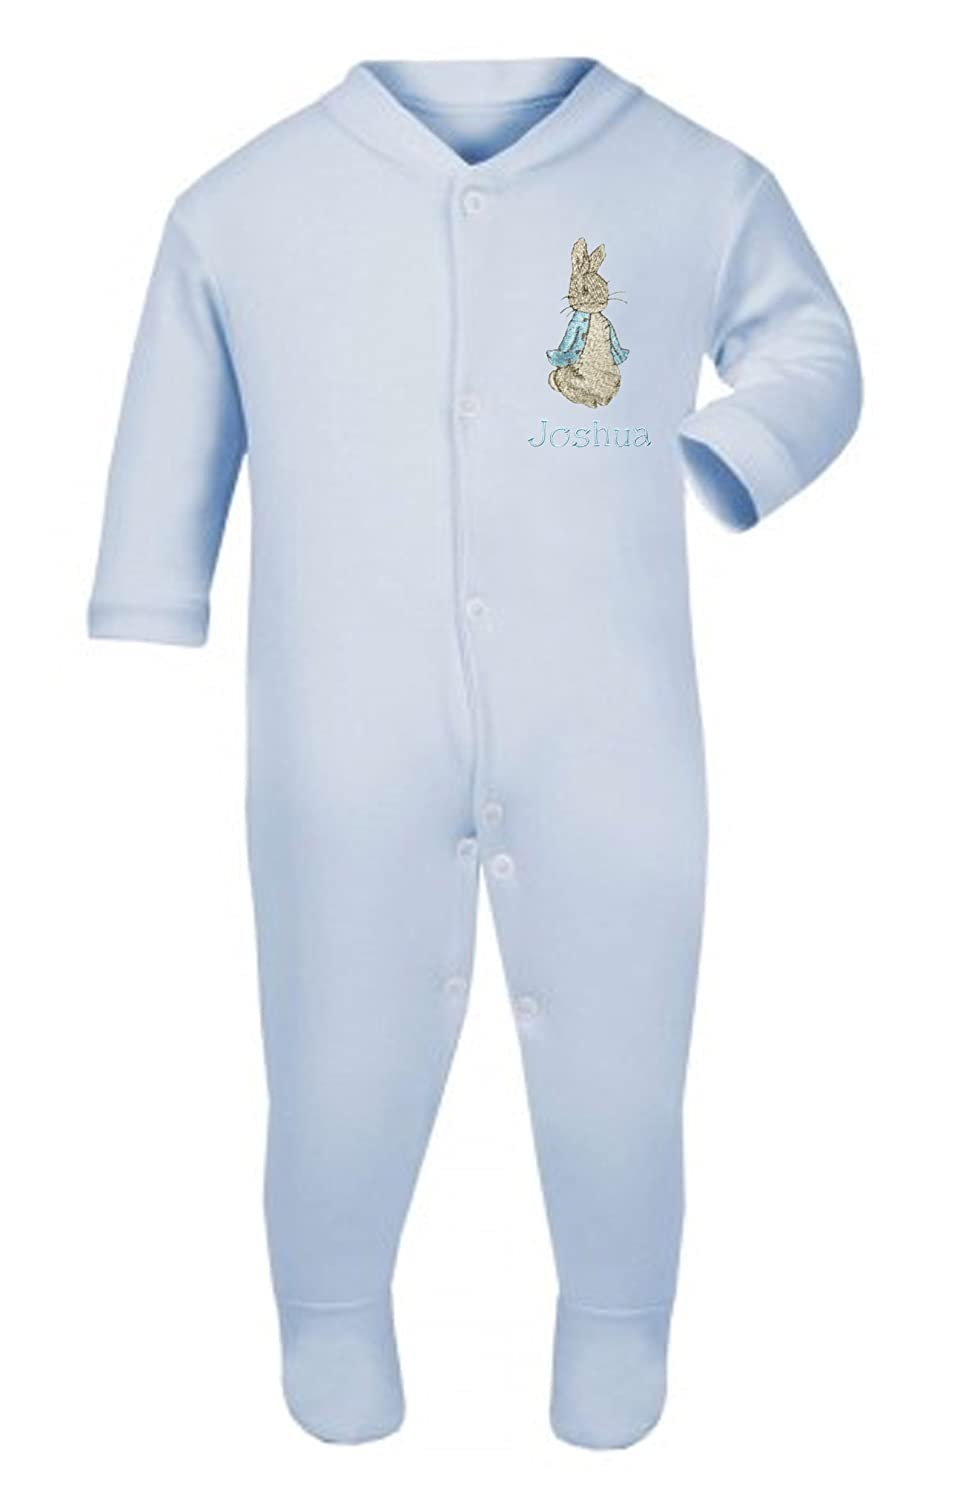 Boys Blue Personalised Peter The Rabbit Baby Grow/Sleepsuit - Now Available in 3 Sizes